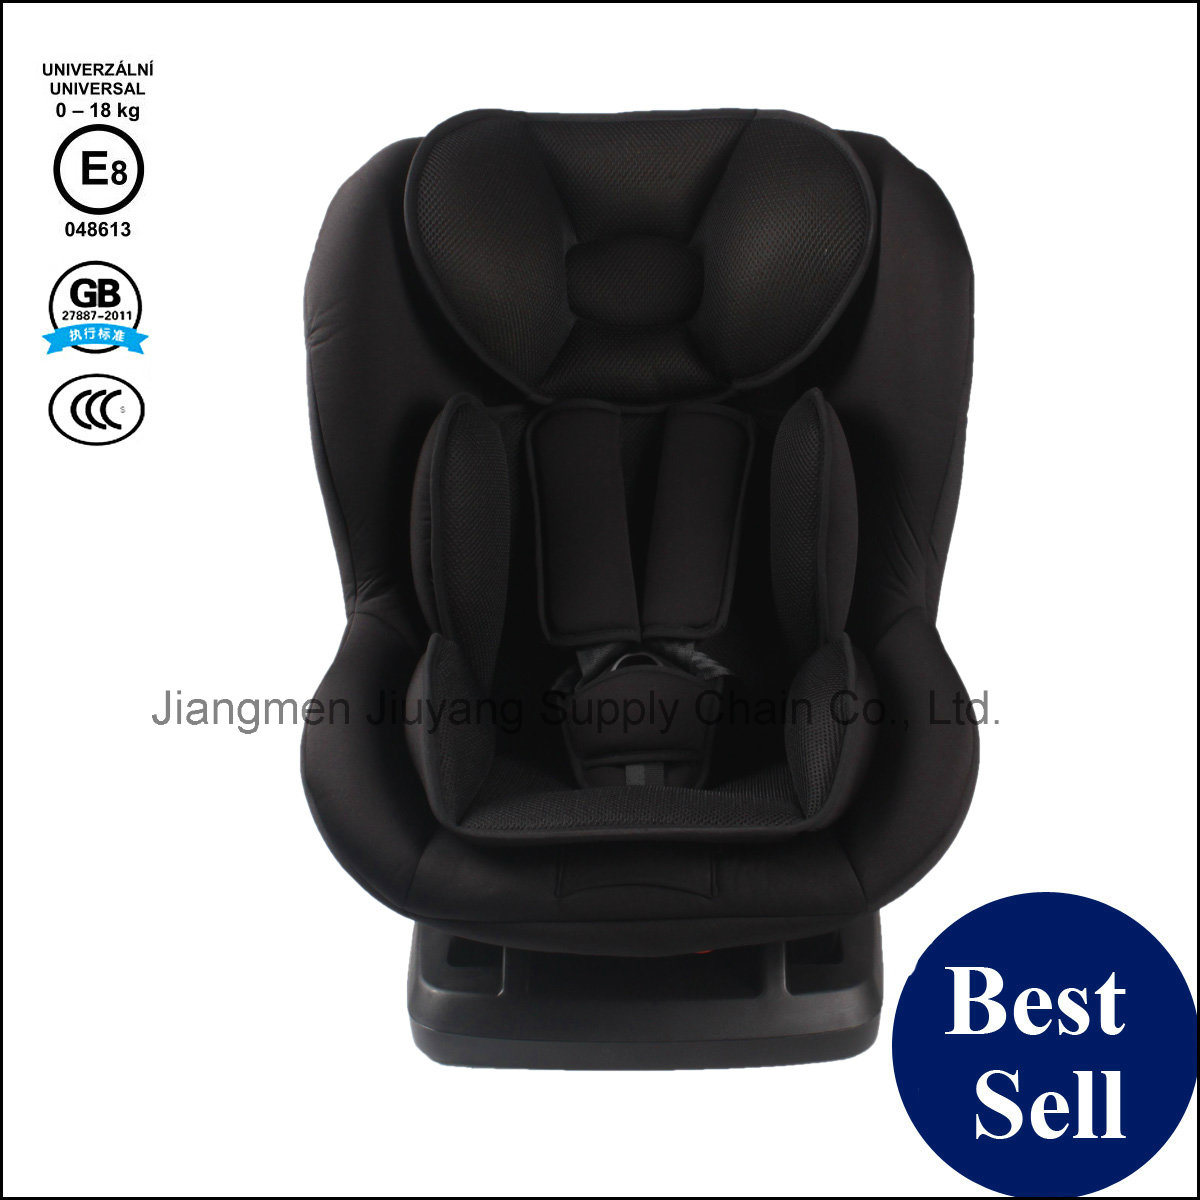 Factory New Product - Baby Safety Car Seat for Newborn to 4 Years Child